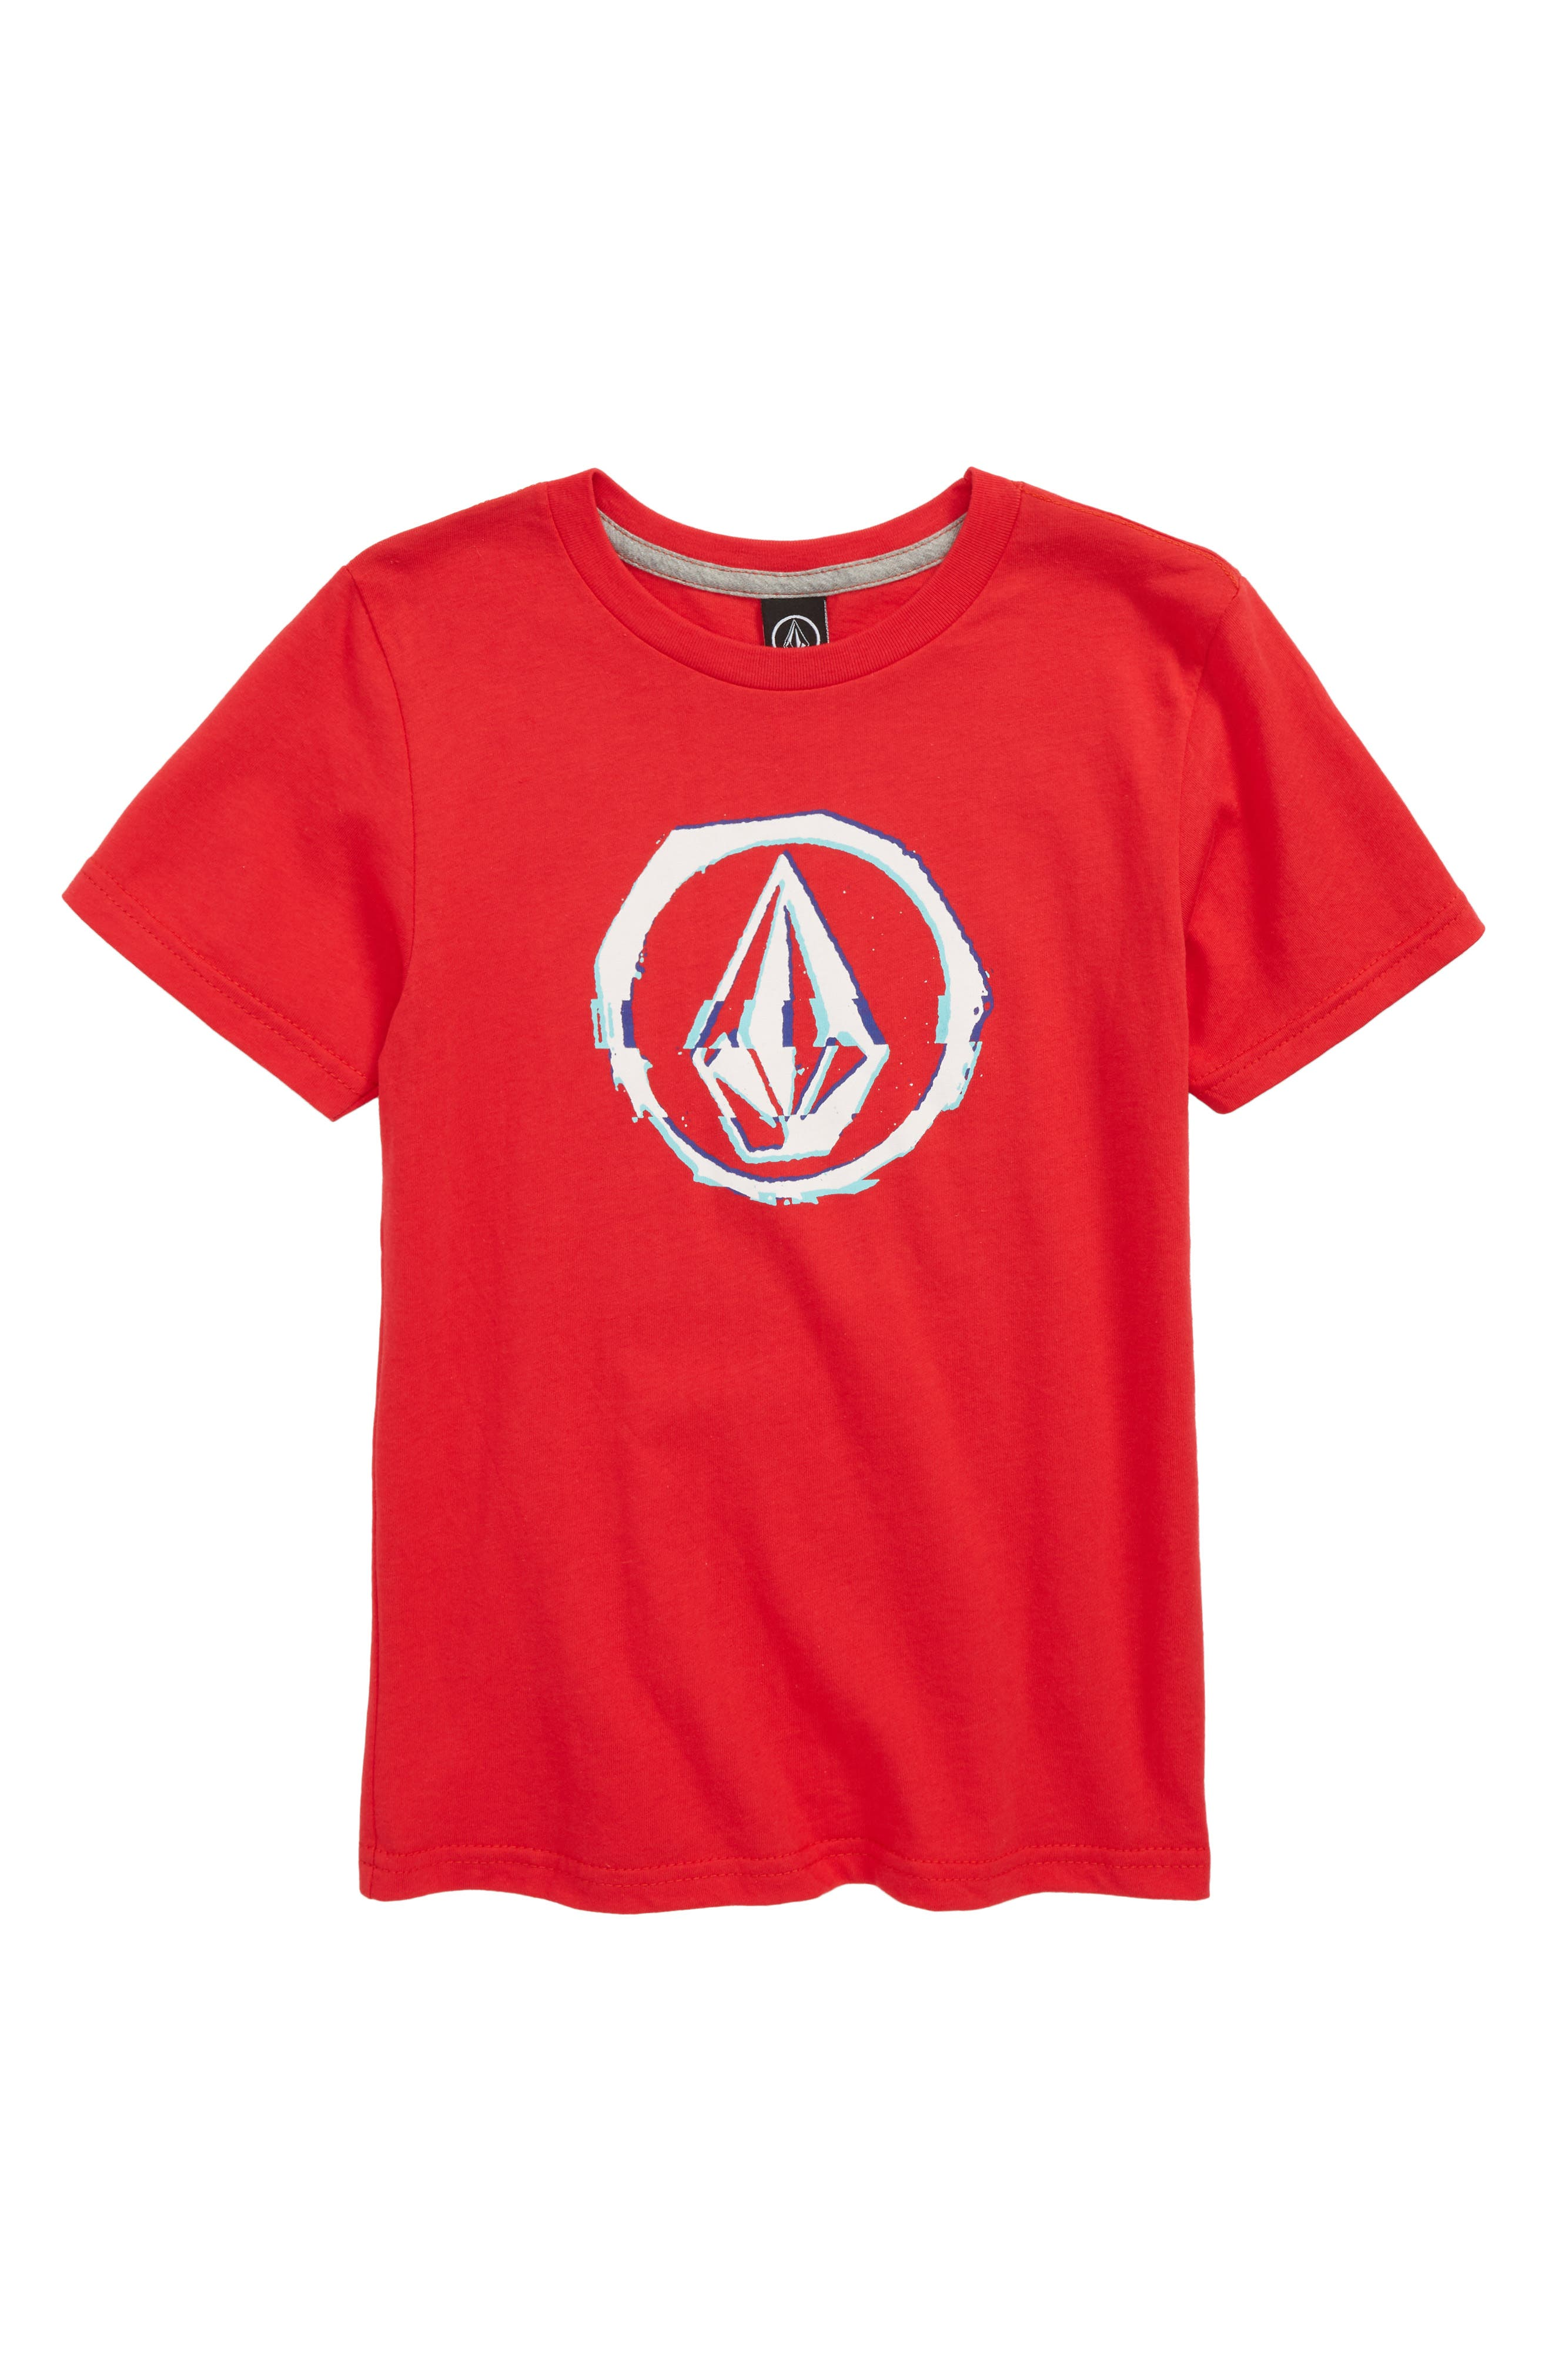 Volcom Glitchy Graphic T-Shirt (Toddler Boys & Little Boys)